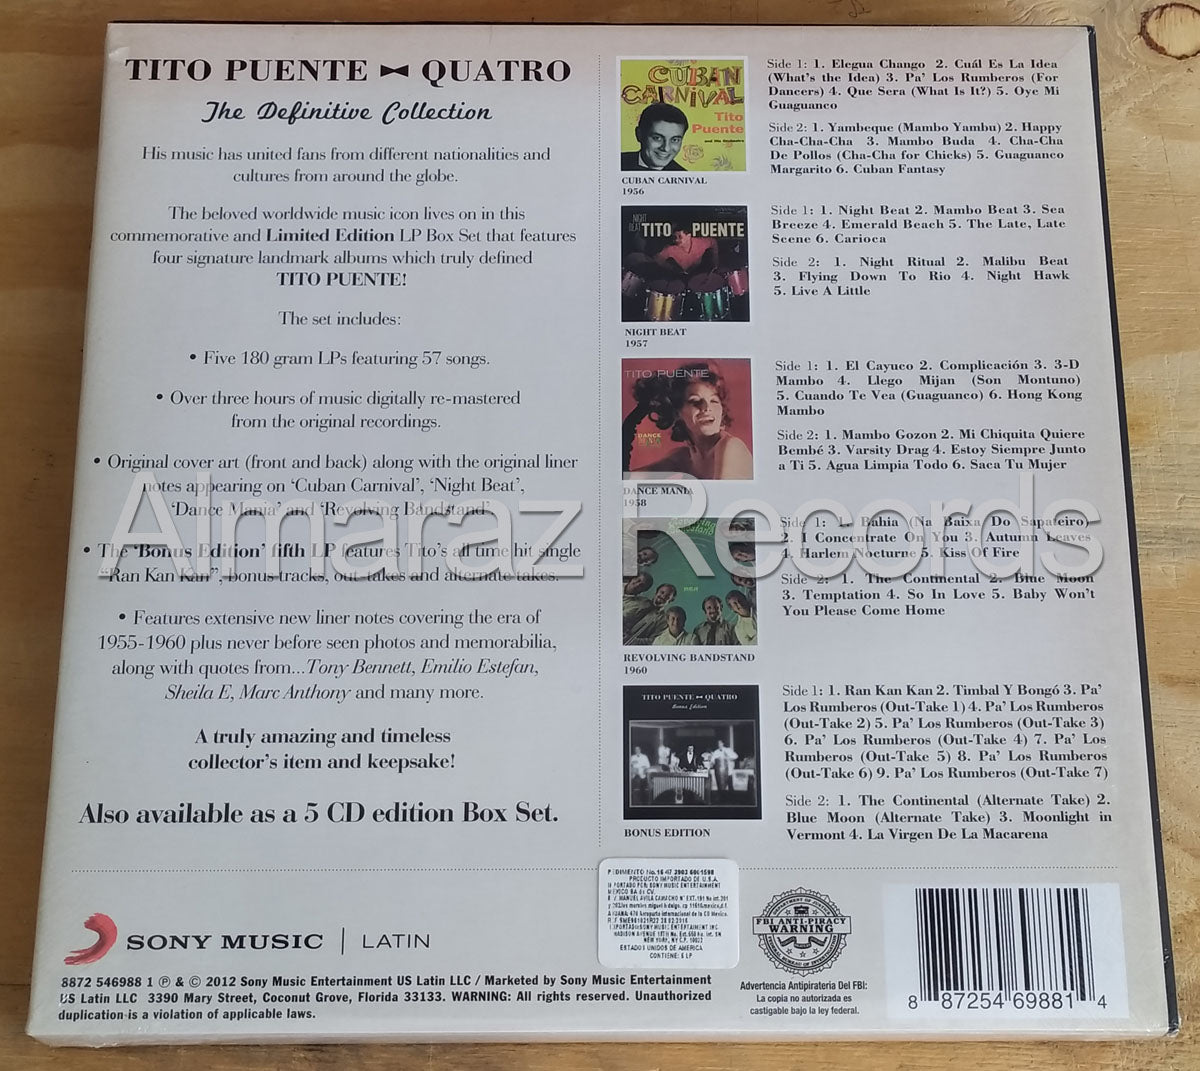 Tito Puente Quatro The Definitive Collection Vinyl LP Boxset